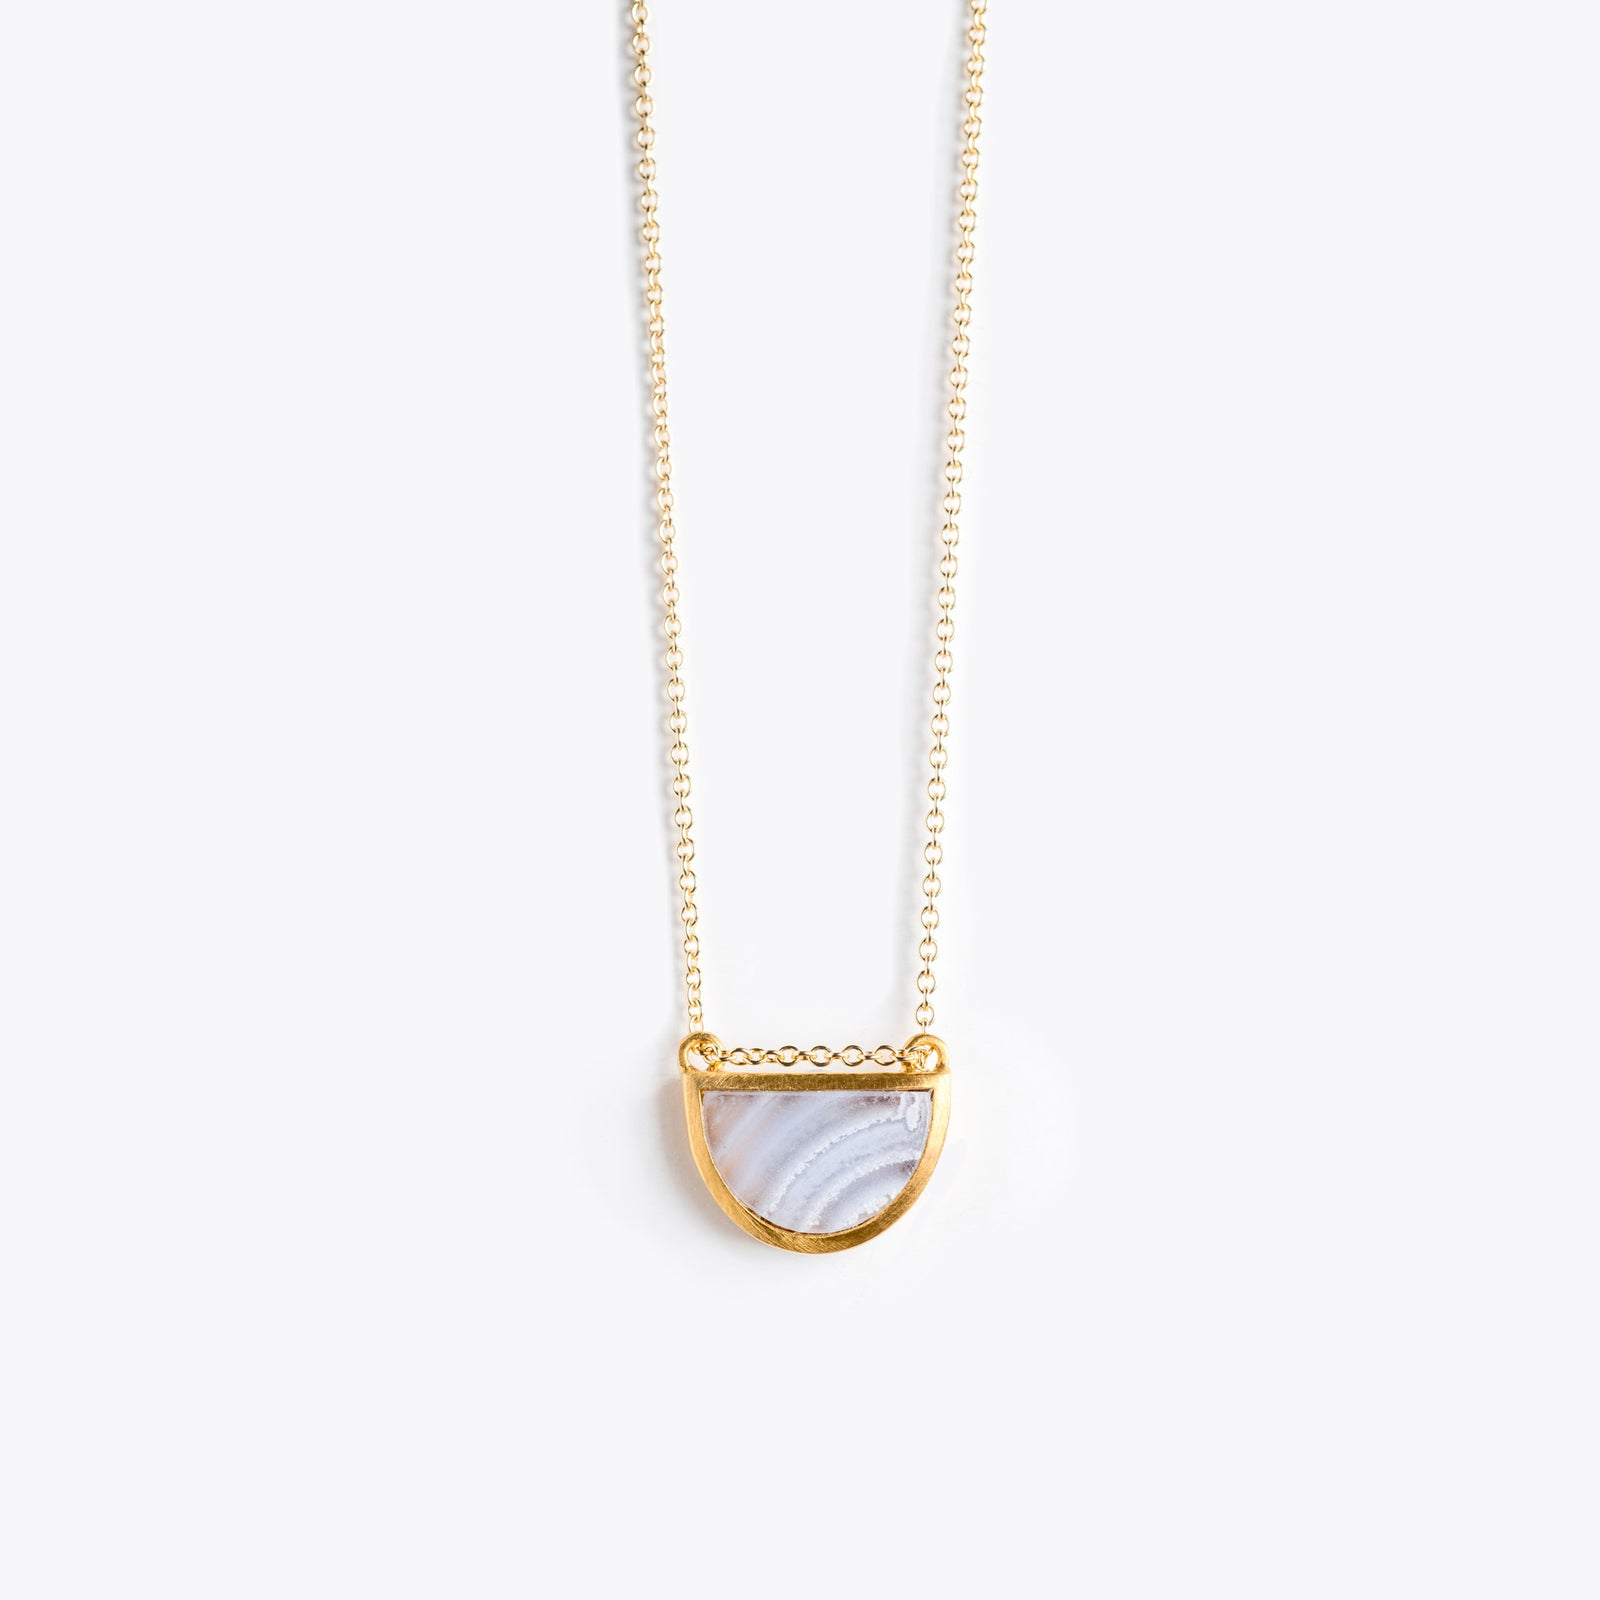 Wanderlust Life Ethically Handmade jewellery made in the UK. Minimalist gold and fine cord jewellery. sunburst fine gold chain necklace, blue lace agate